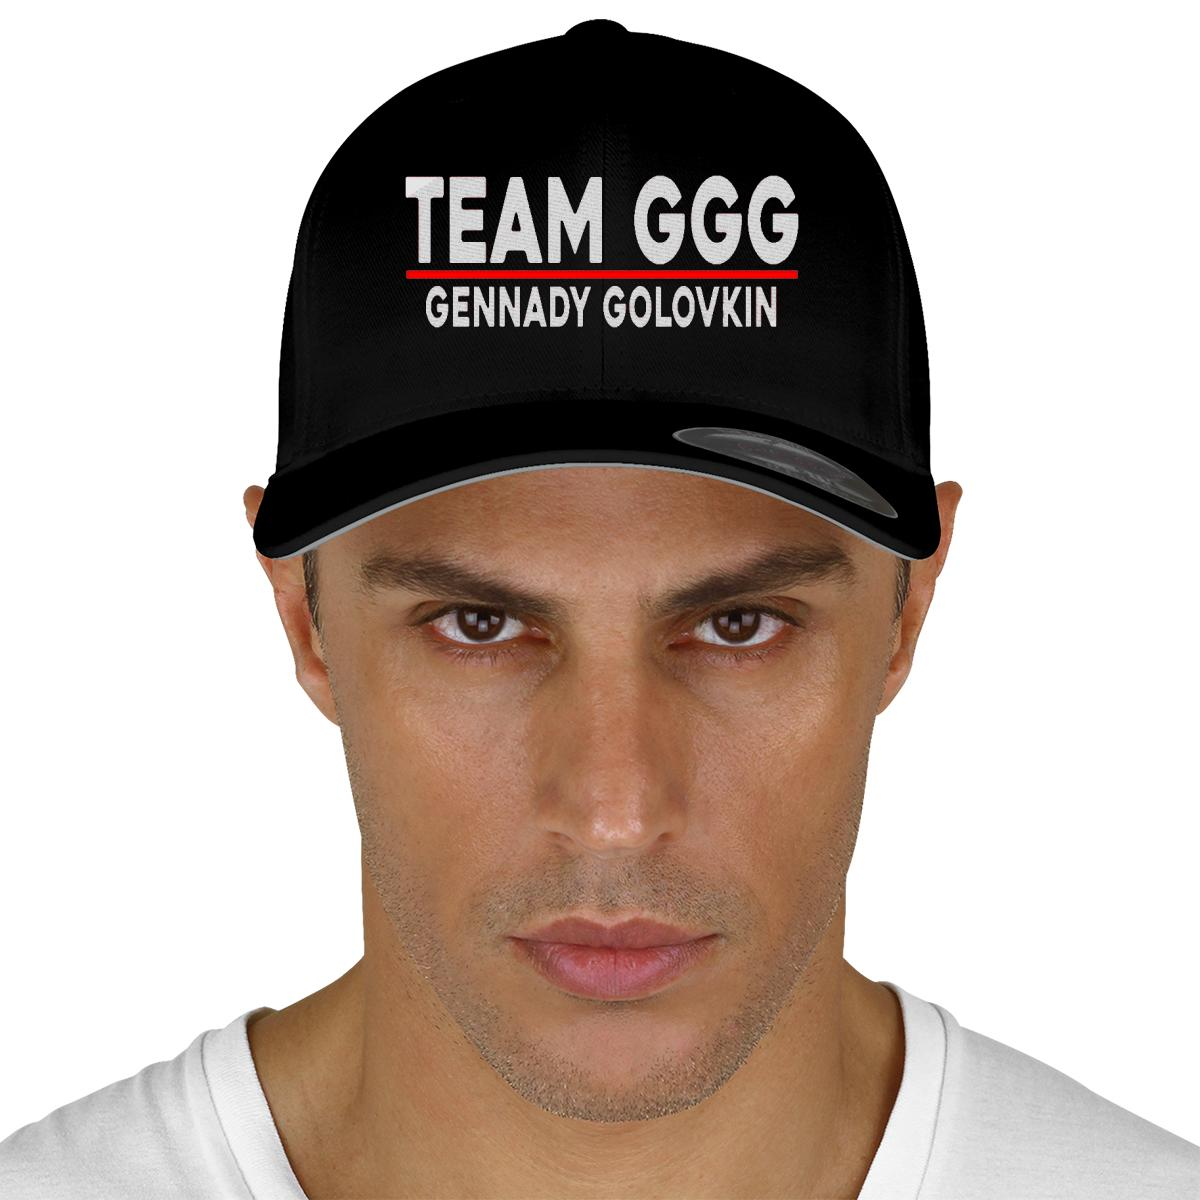 Team GGG Gennady Golovkin Baseball Cap (Embroidered)  86a09b7c8de5